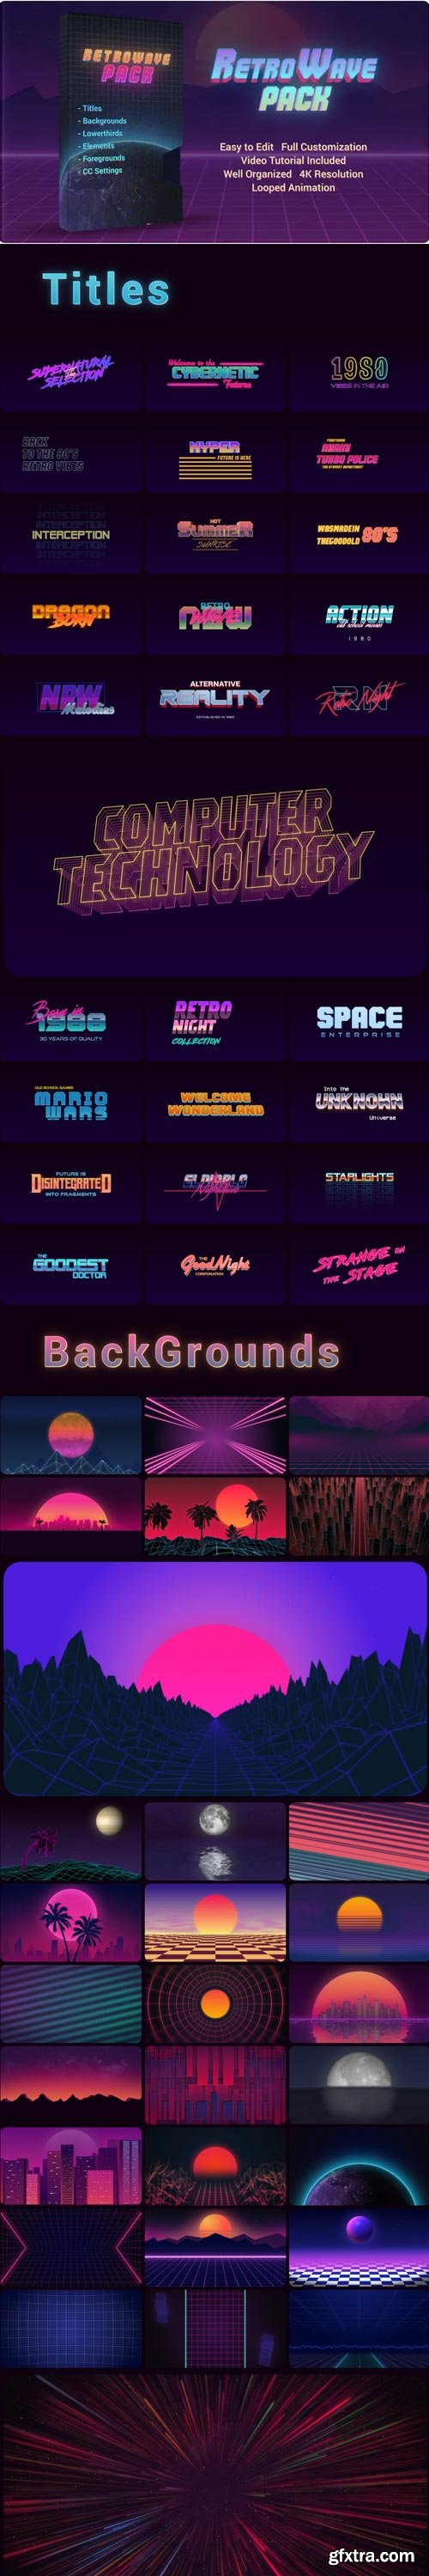 Videohive - Retro Wave Pack - 28786036